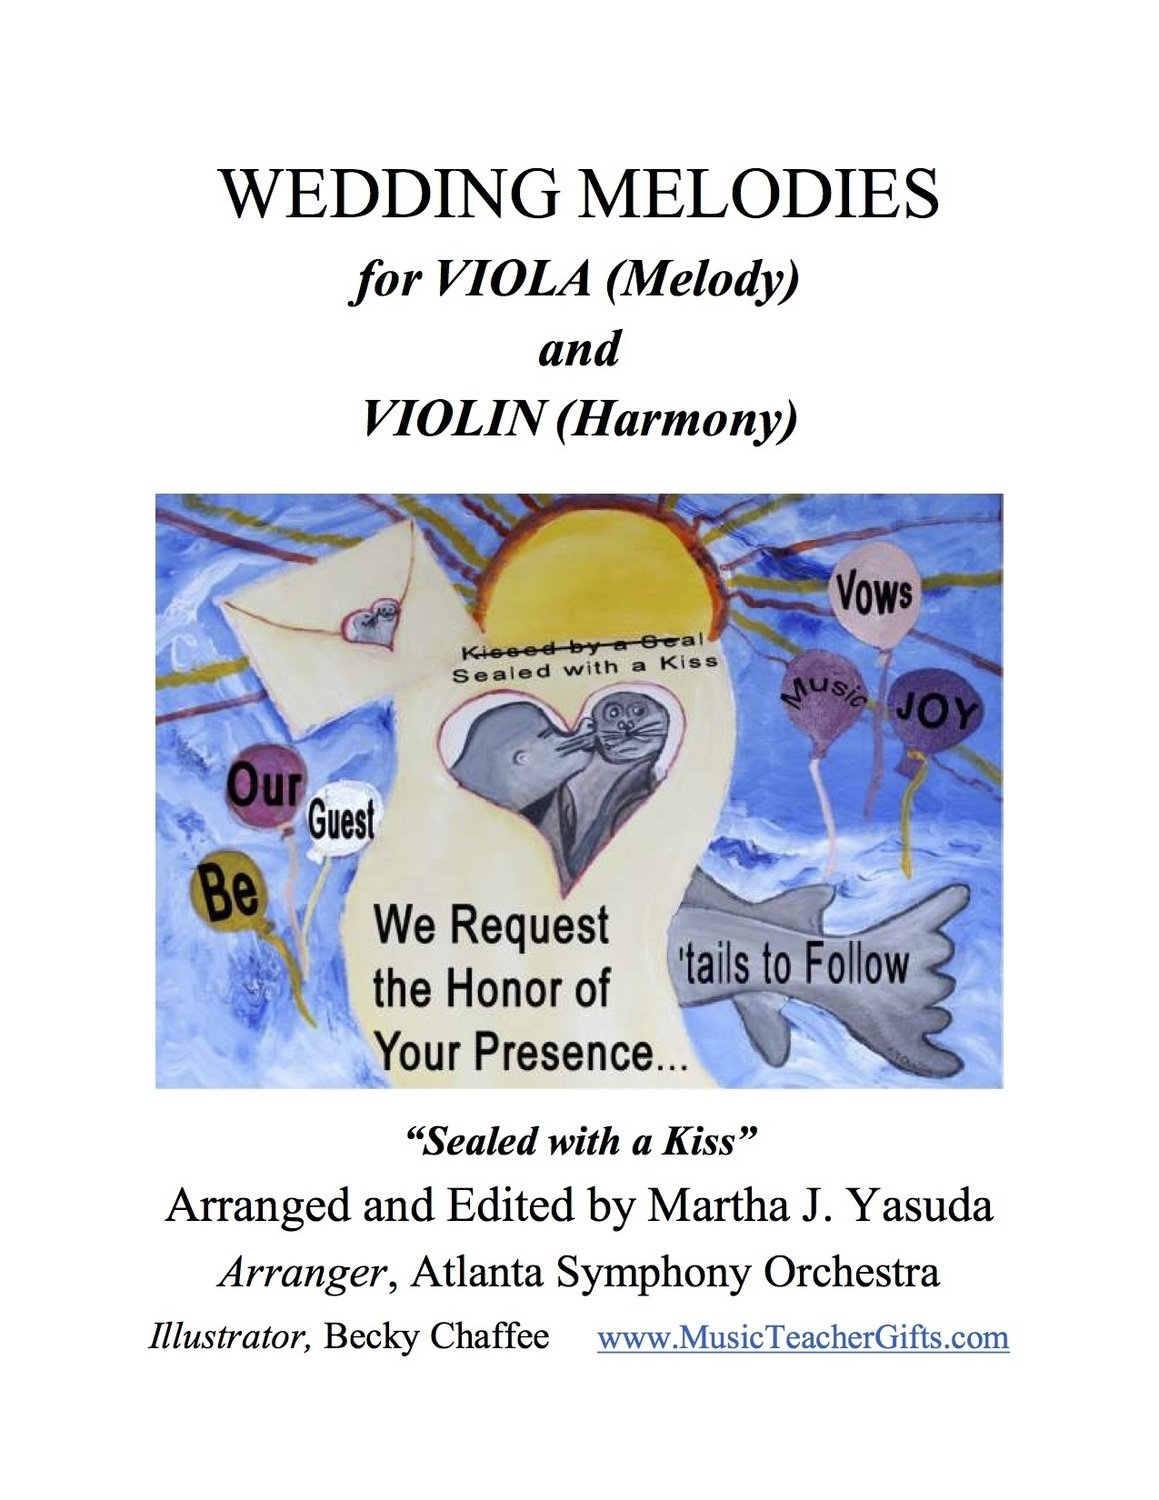 058 - Wedding Melodies for Viola (Melody) and Violin (Harmony)